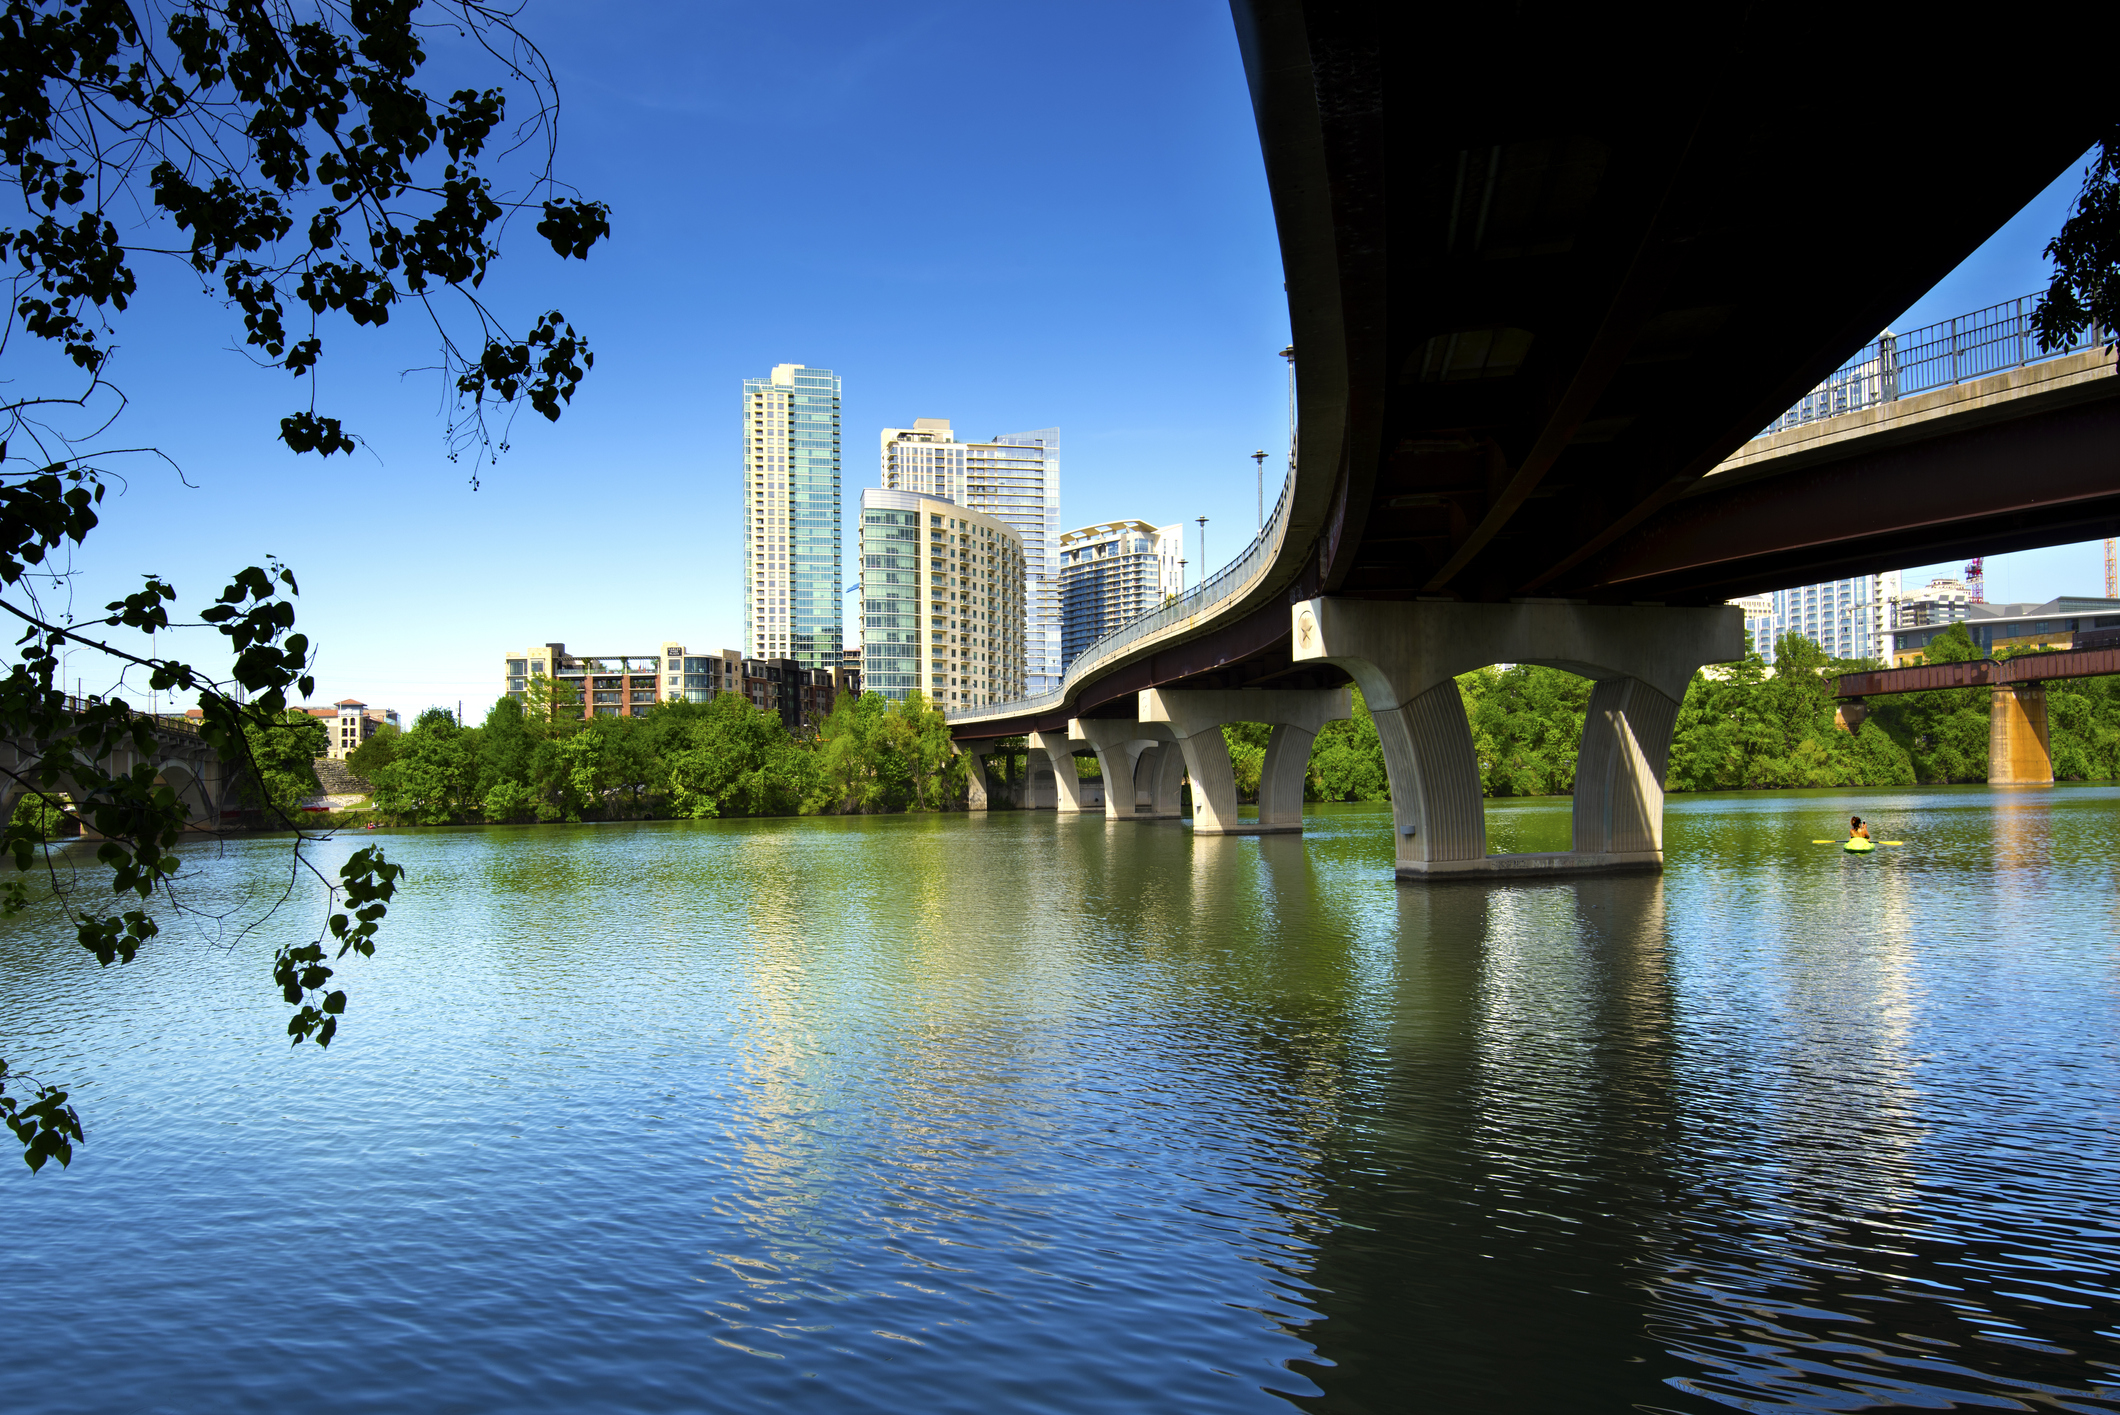 The James D. Pfluger Pedestrian and Bicycle Bridge crosses Lady Bird Lake in downtown Austin, Texas. The bridge connects the north and south side of the Lady Bird Hike and Bike Trail.